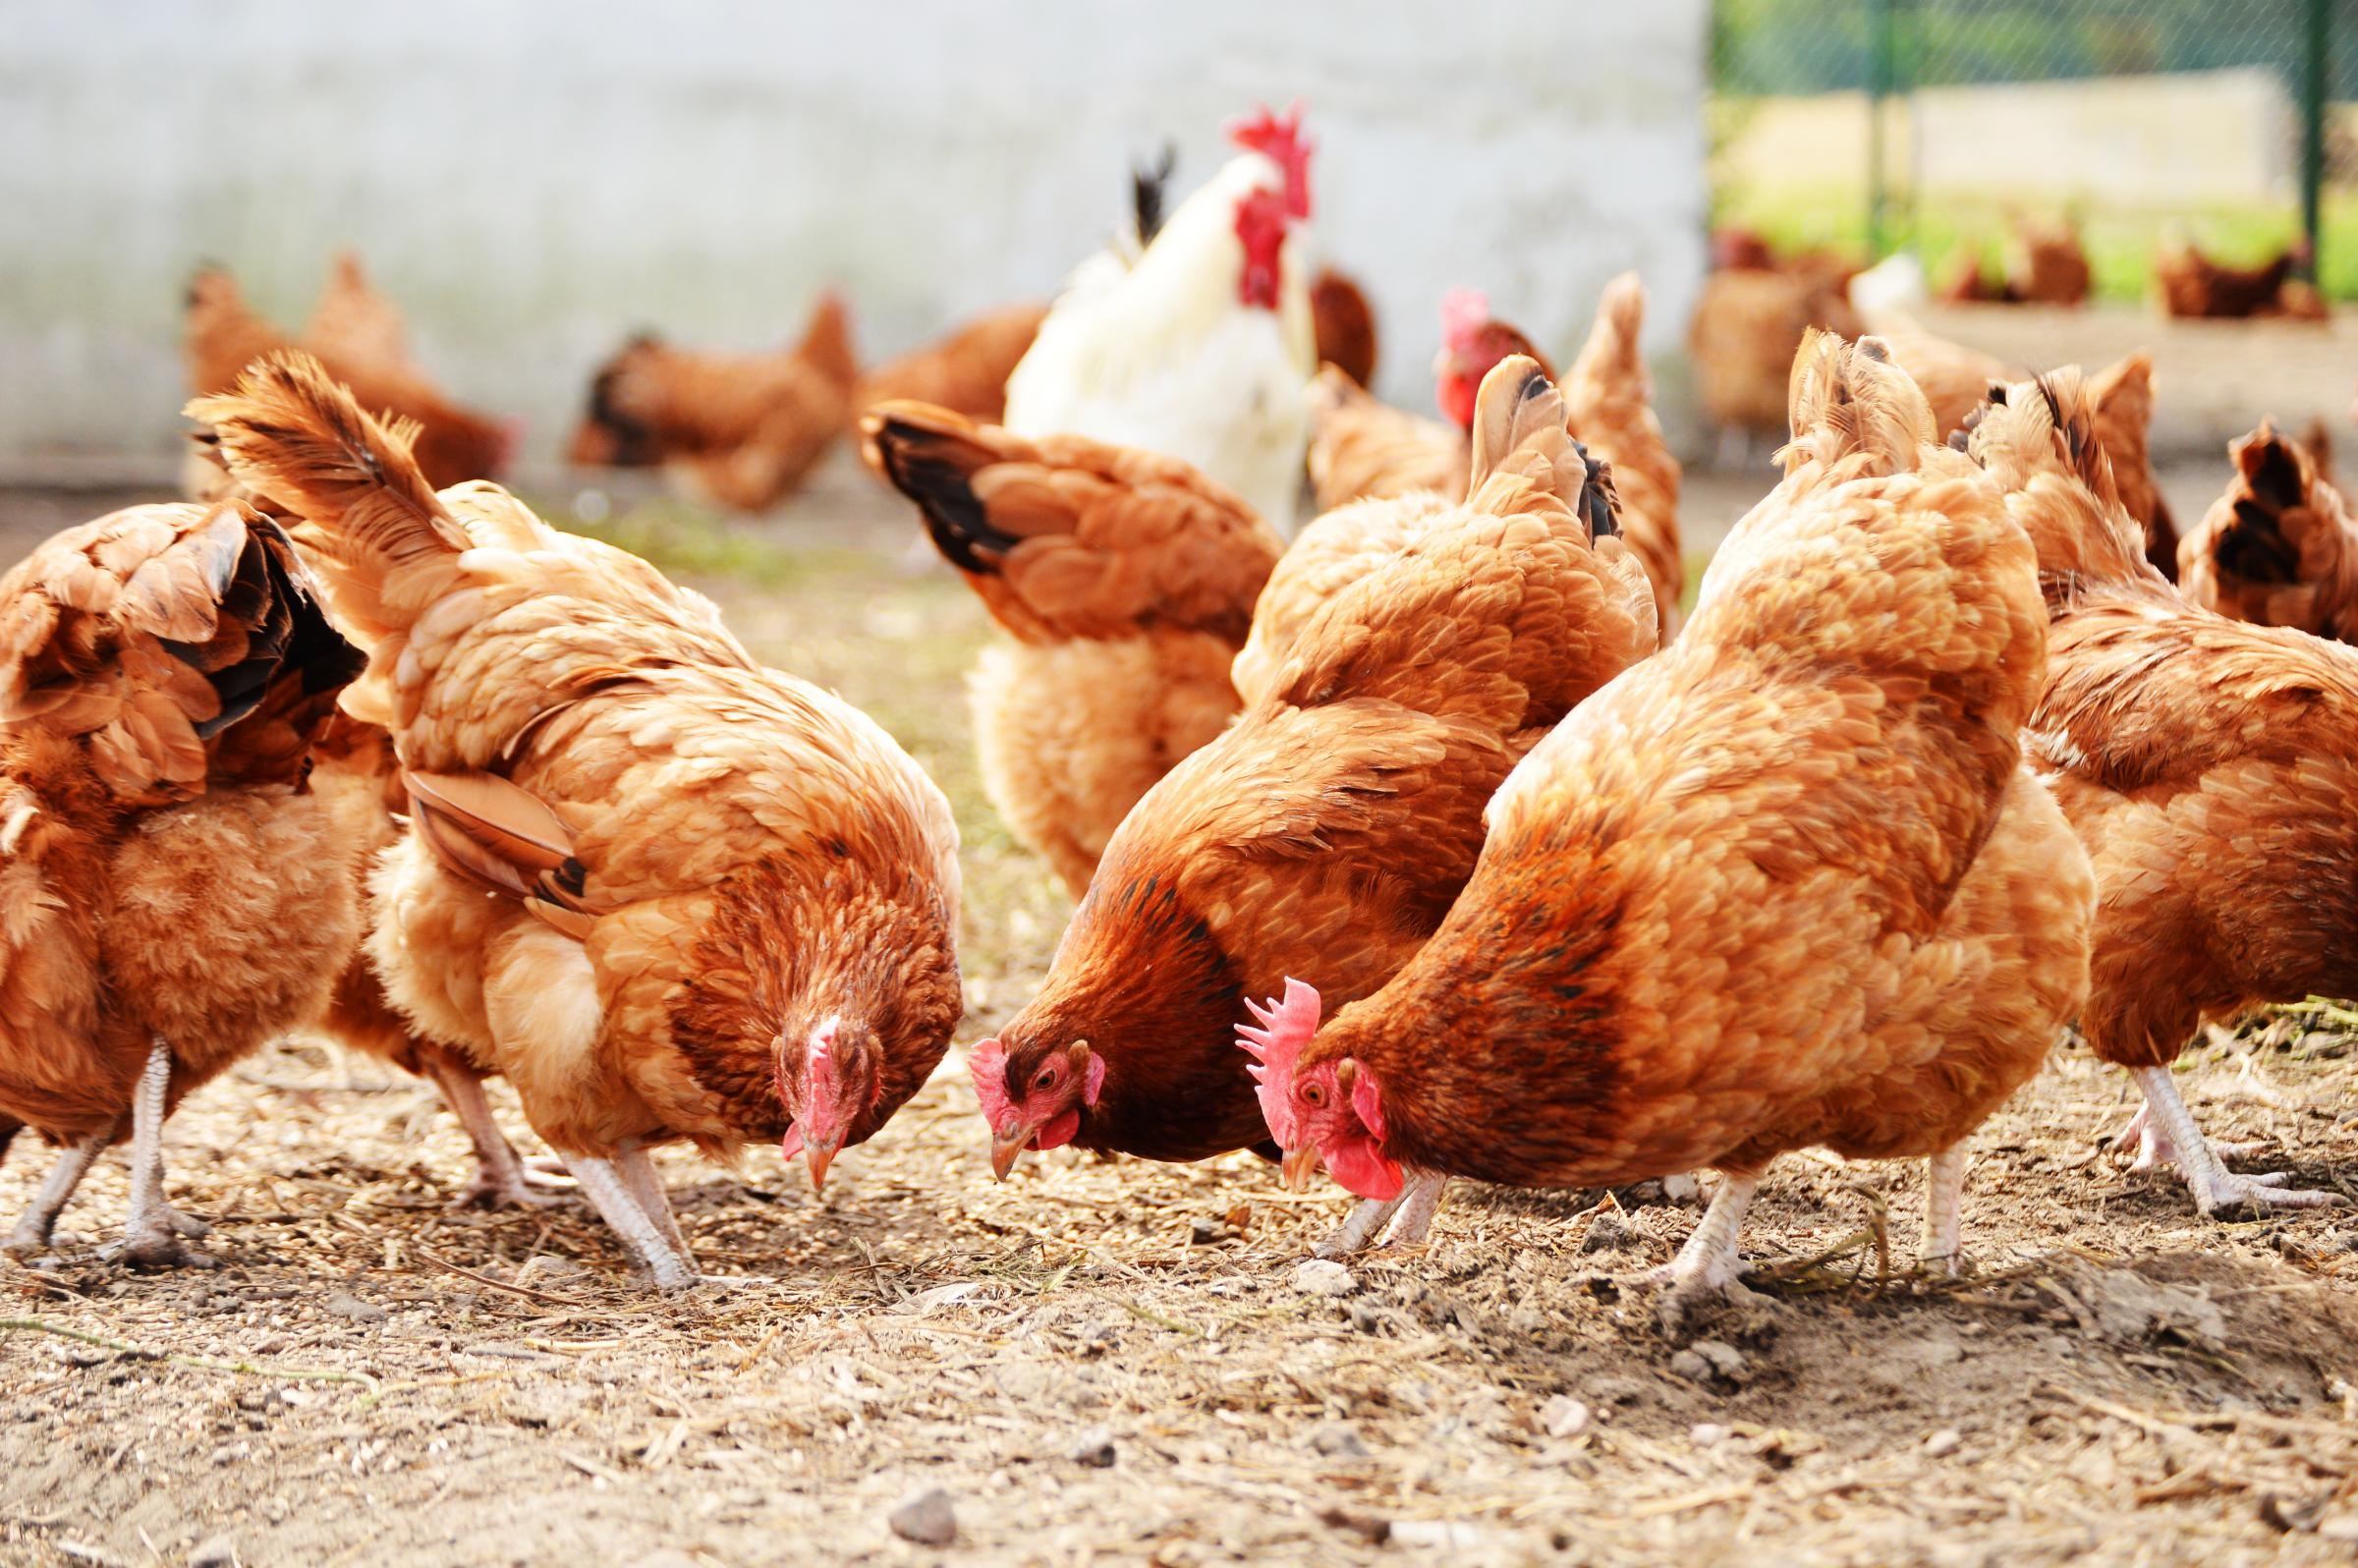 A rise in the number of poultry units is causing concern among environmentalists